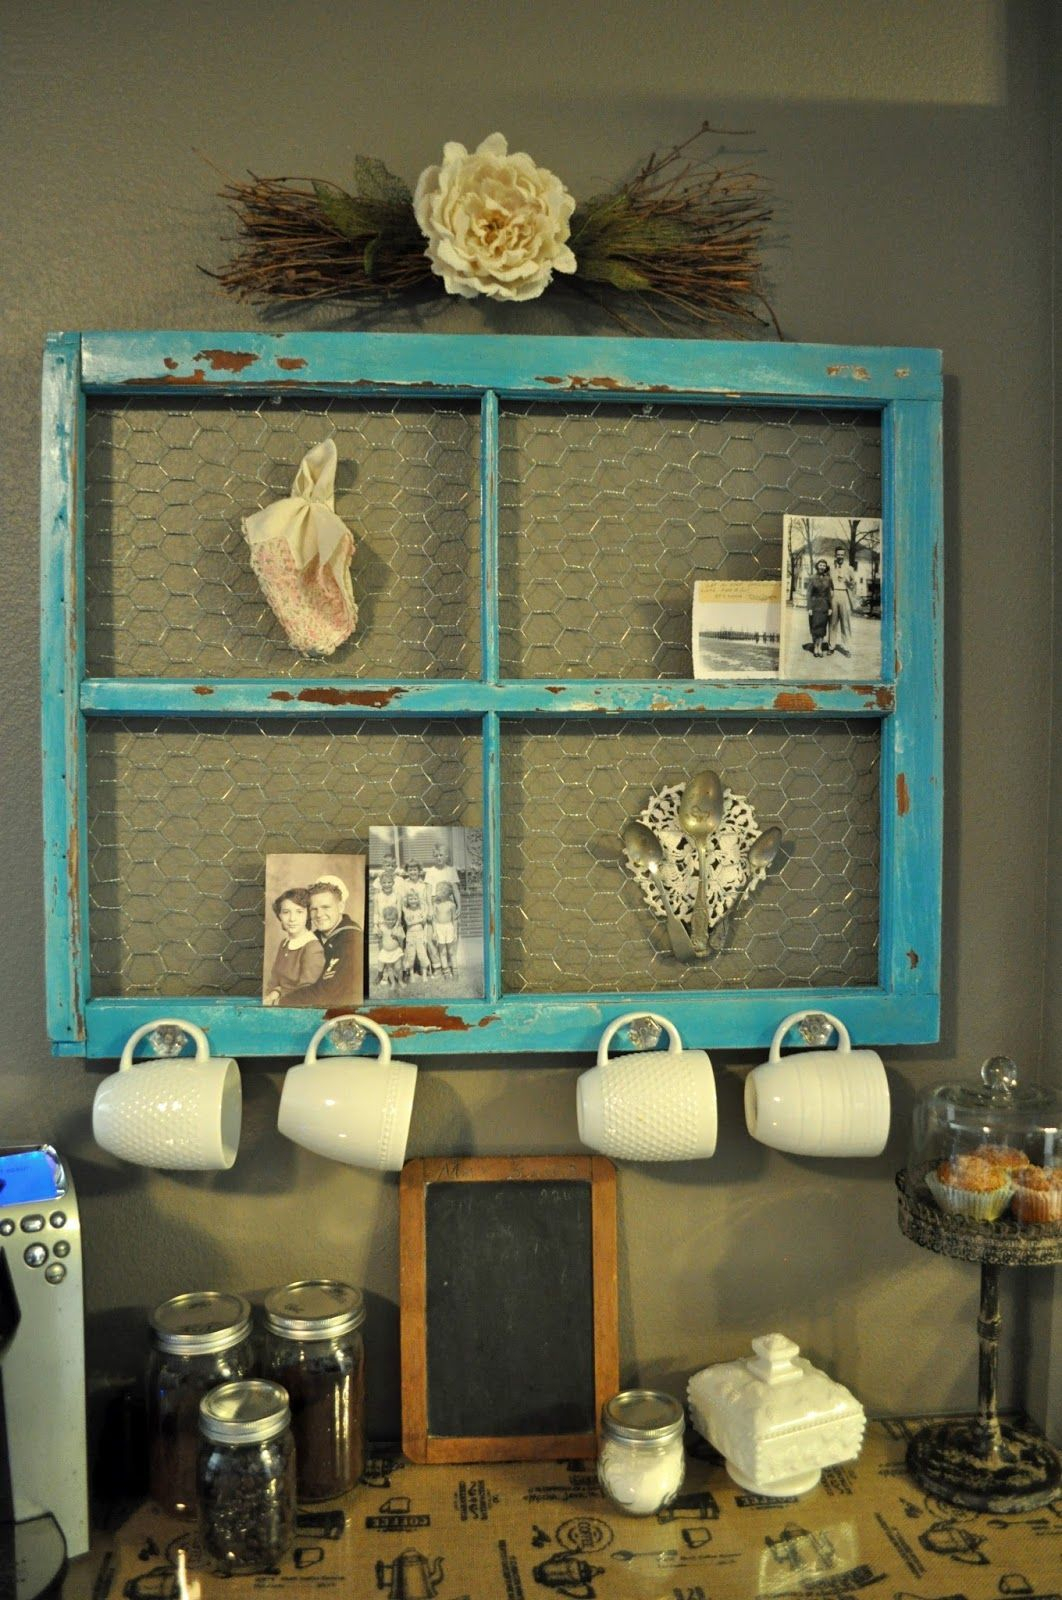 20 Different Ways To Use Old Window Frames | The Best with Old Rustic Barn Window Frame (Image 1 of 30)